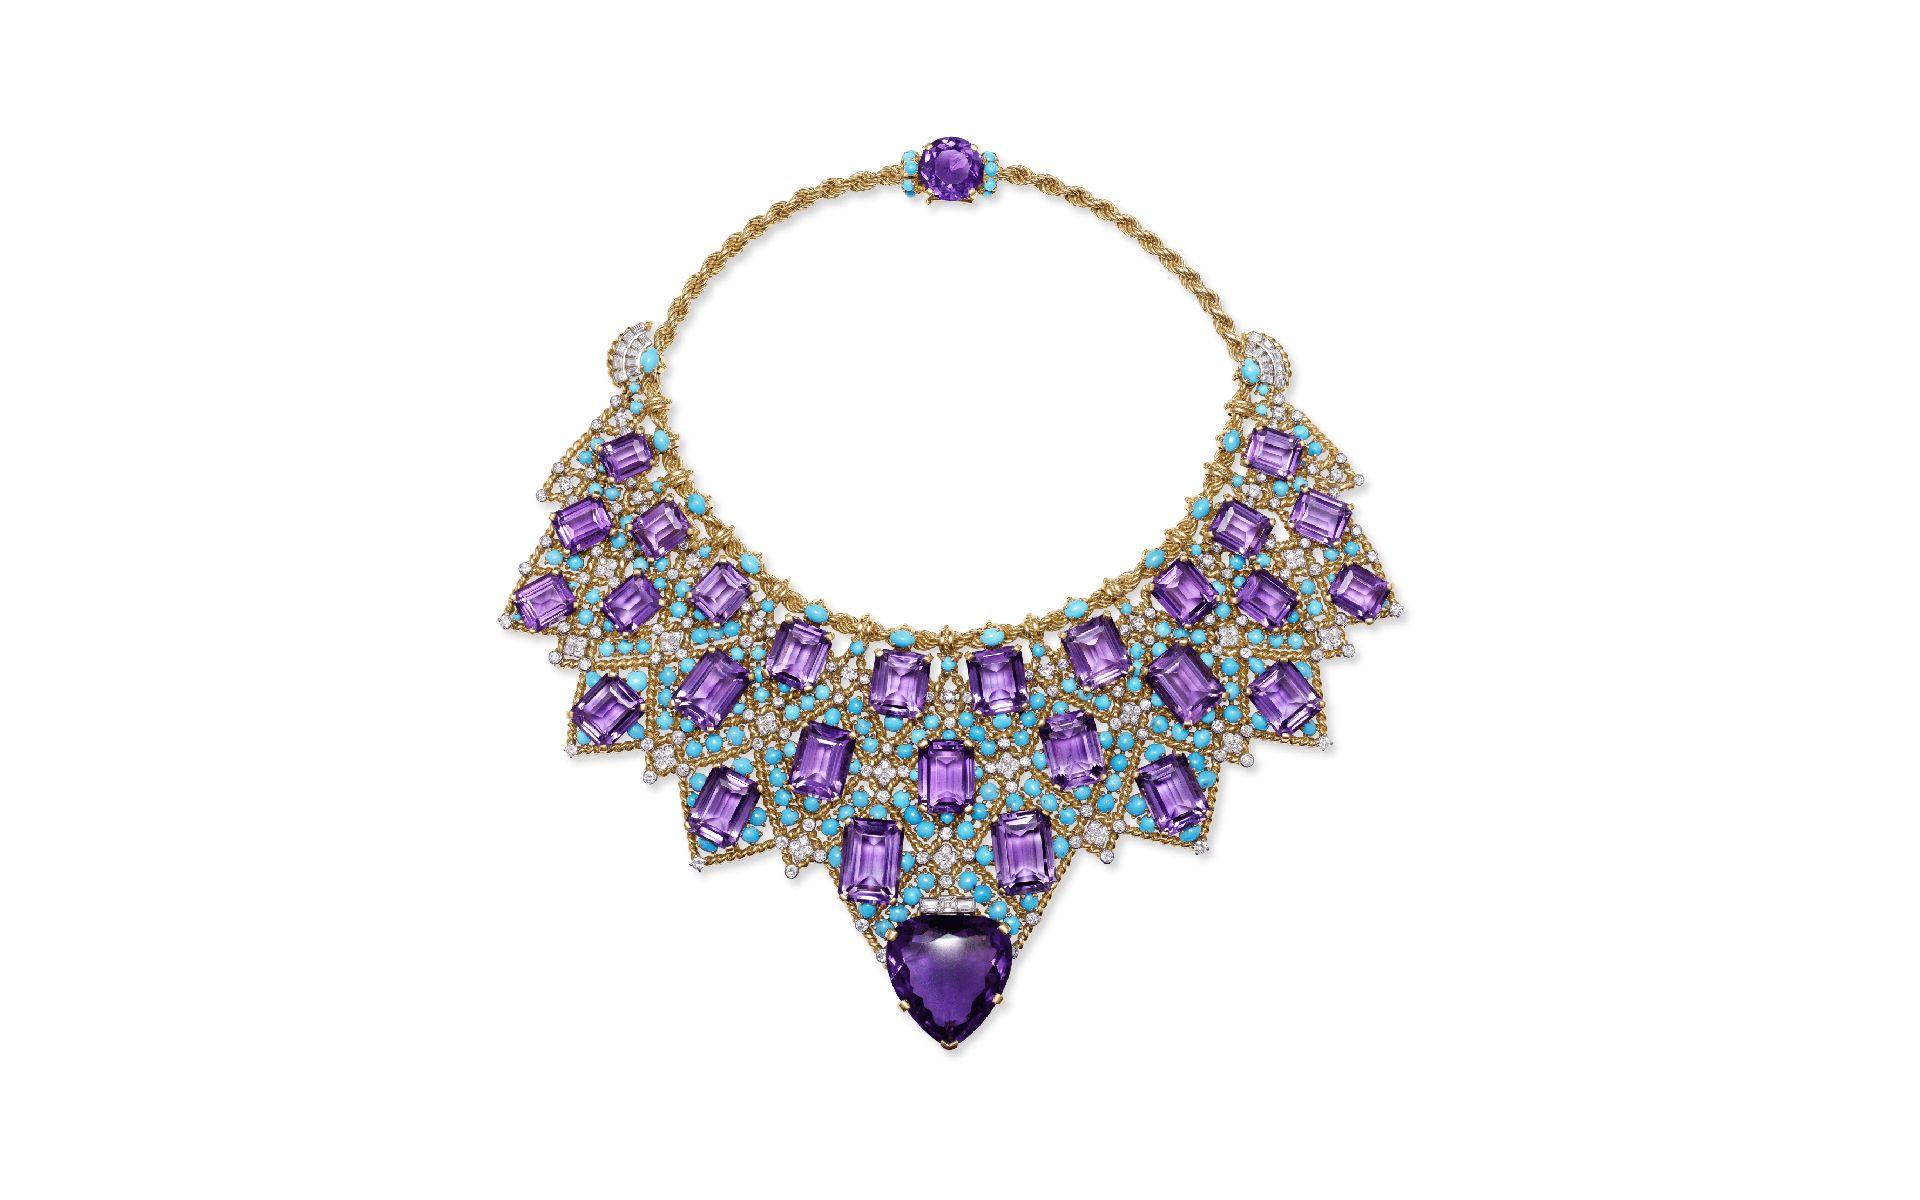 Bib necklace by Nils Herrmann for Cartier Collection